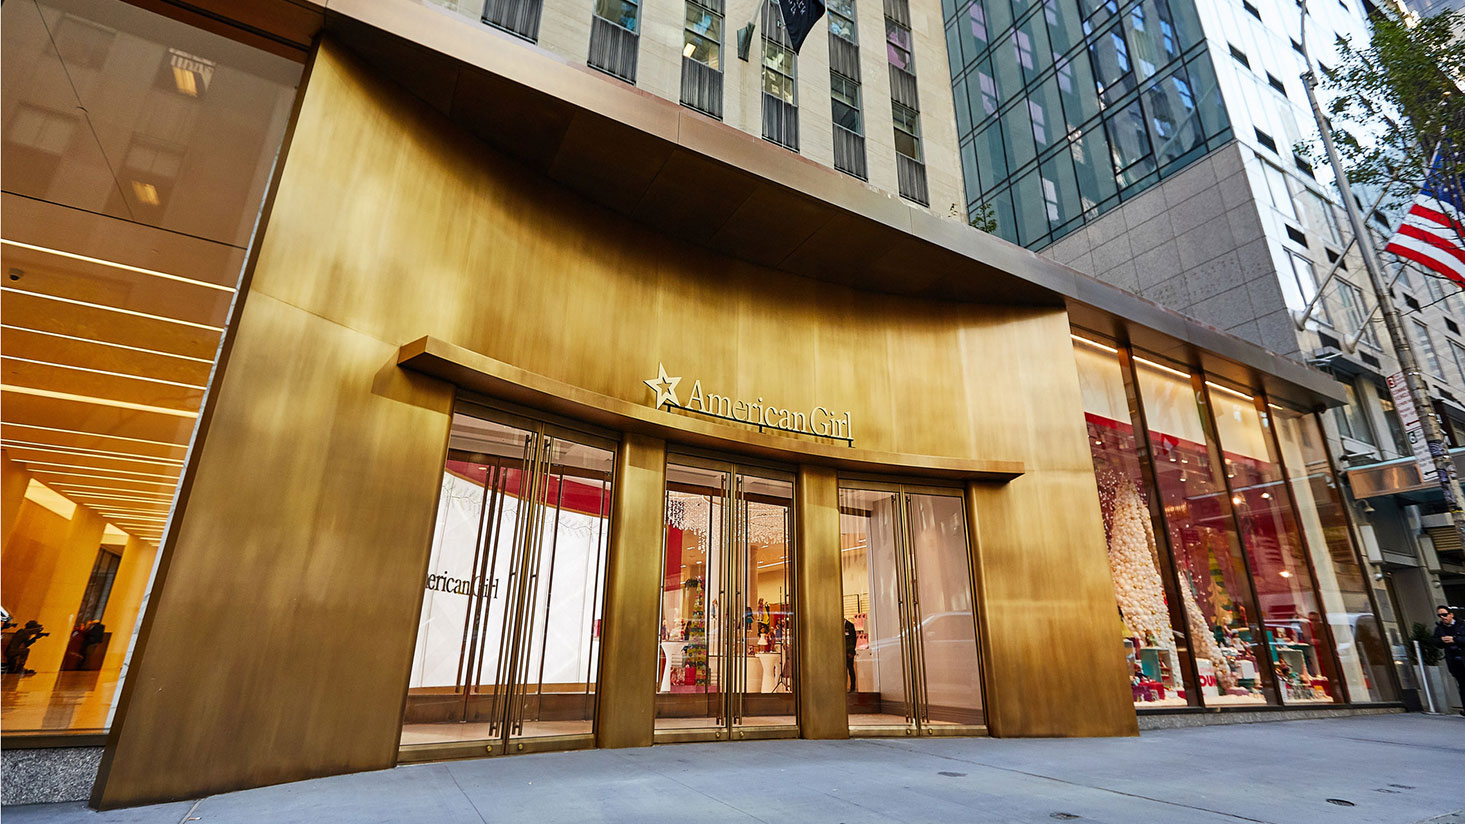 Regency's lighting design lights up childhood dreams at Rockefeller Plaza American Girl store